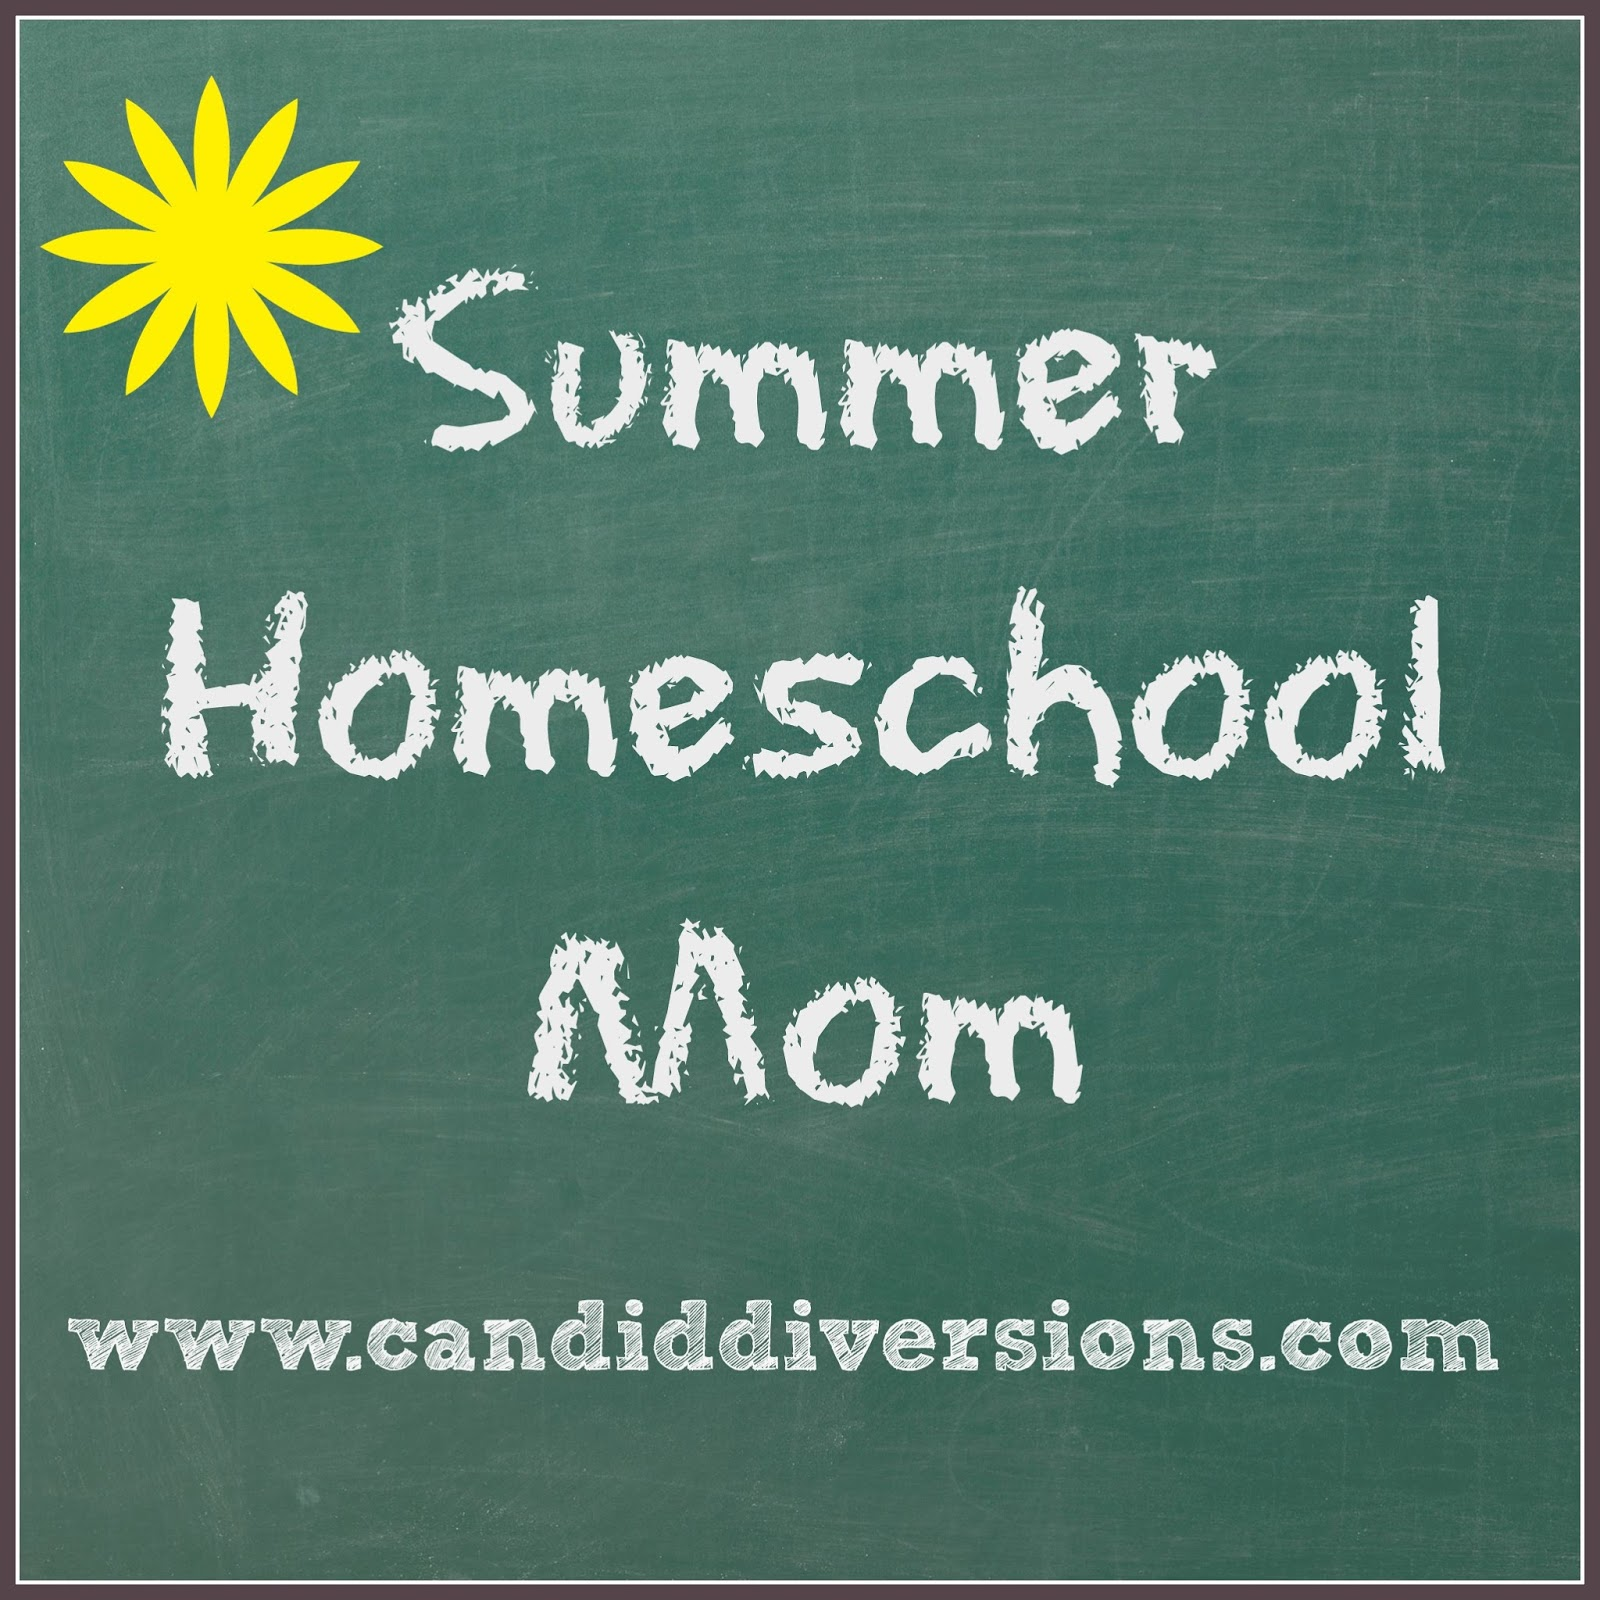 http://www.candiddiversions.com/2013/07/summer-homeschool-mom.html